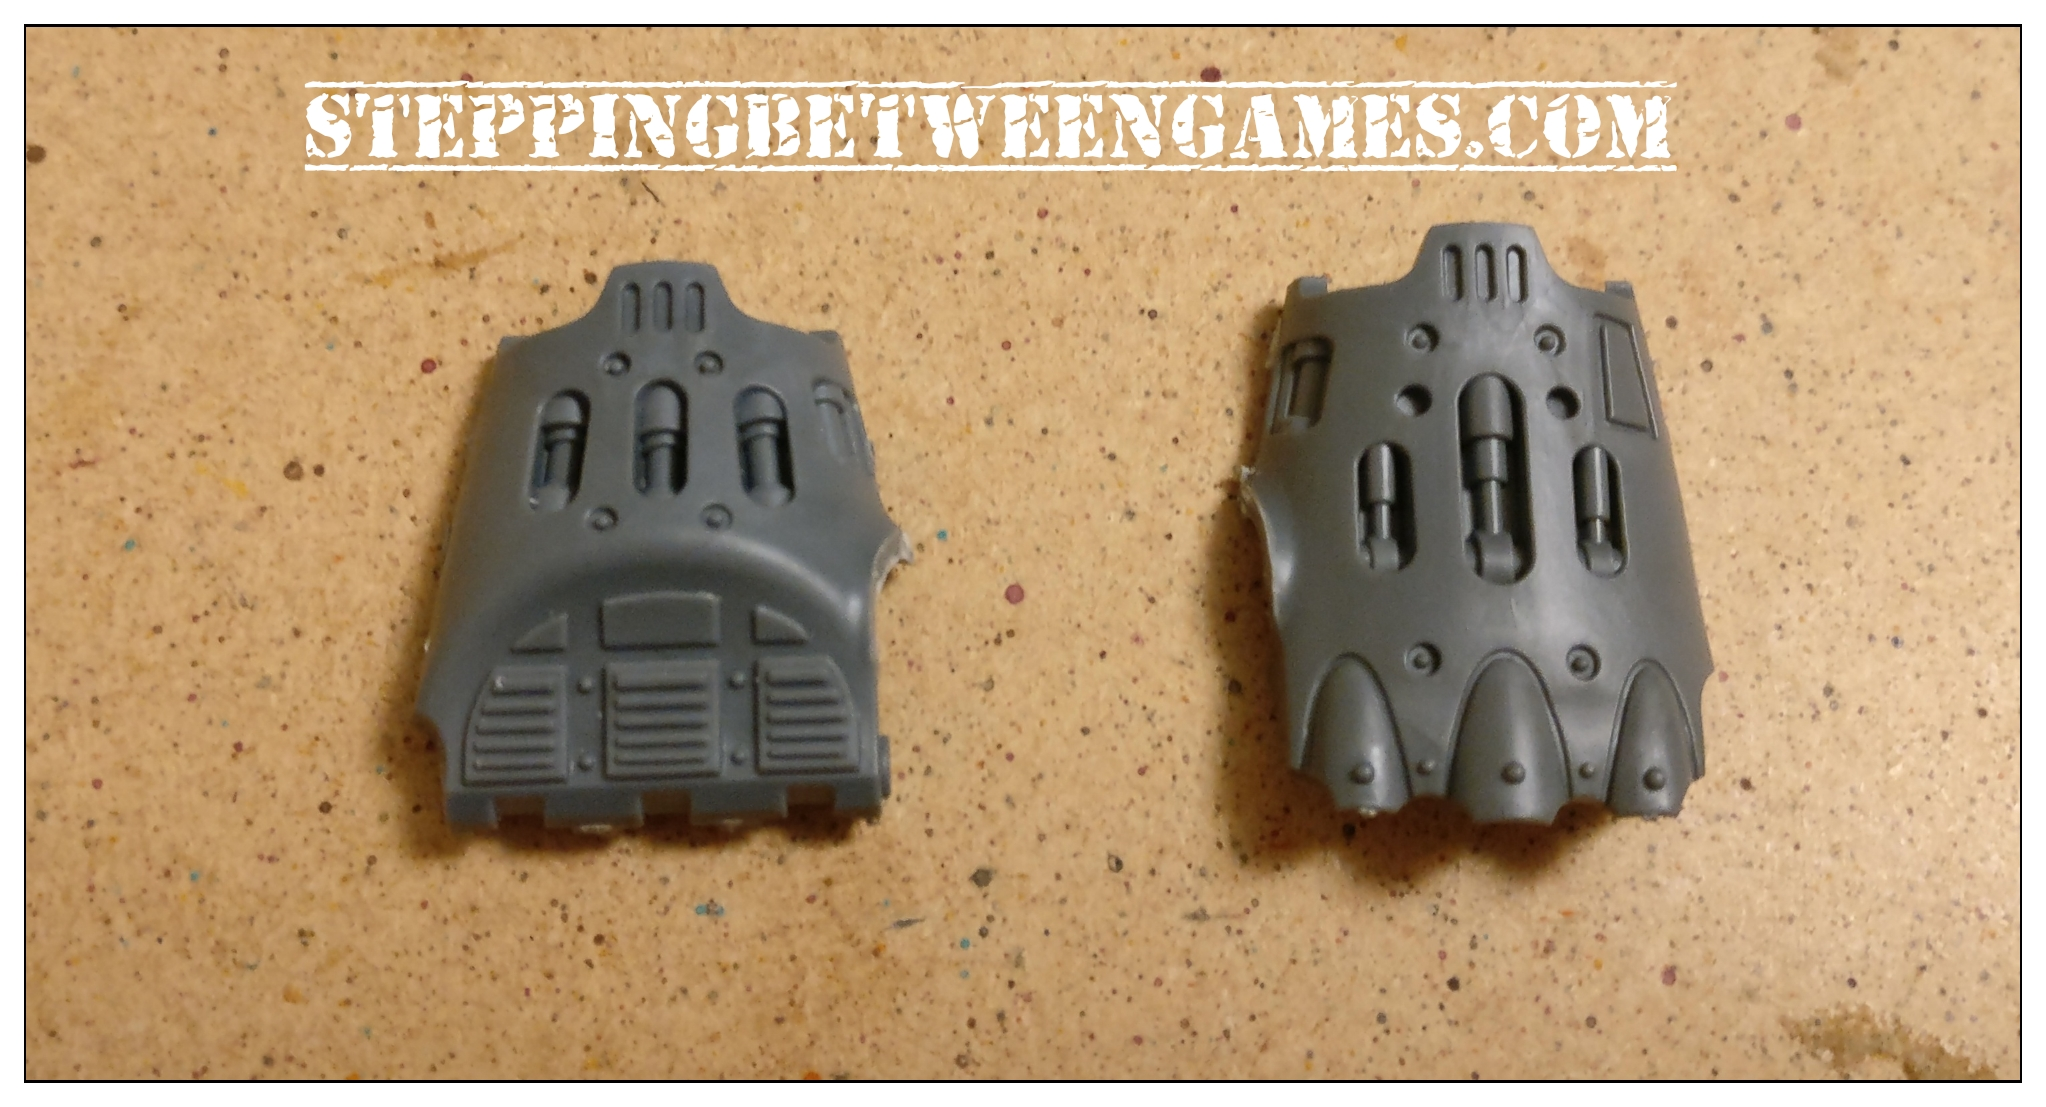 Thunderstrike gauntlet right hand conversion - wires sliced off